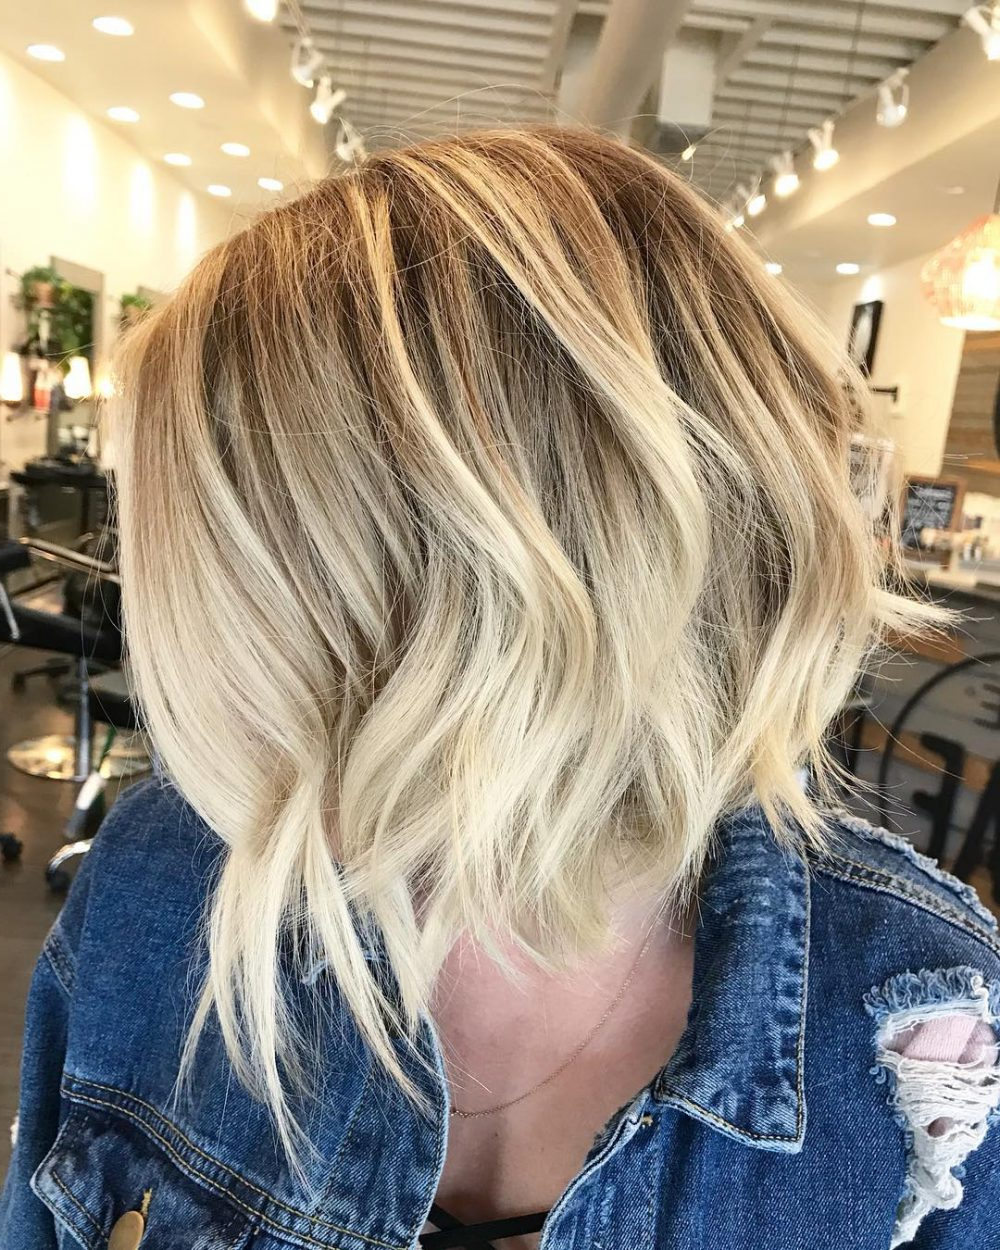 Best And Newest Medium To Long Hairstyles With Chunky Pieces With Regard To 34 Best Choppy Layered Hairstyles (That Will Flatter Anyone) (View 10 of 20)